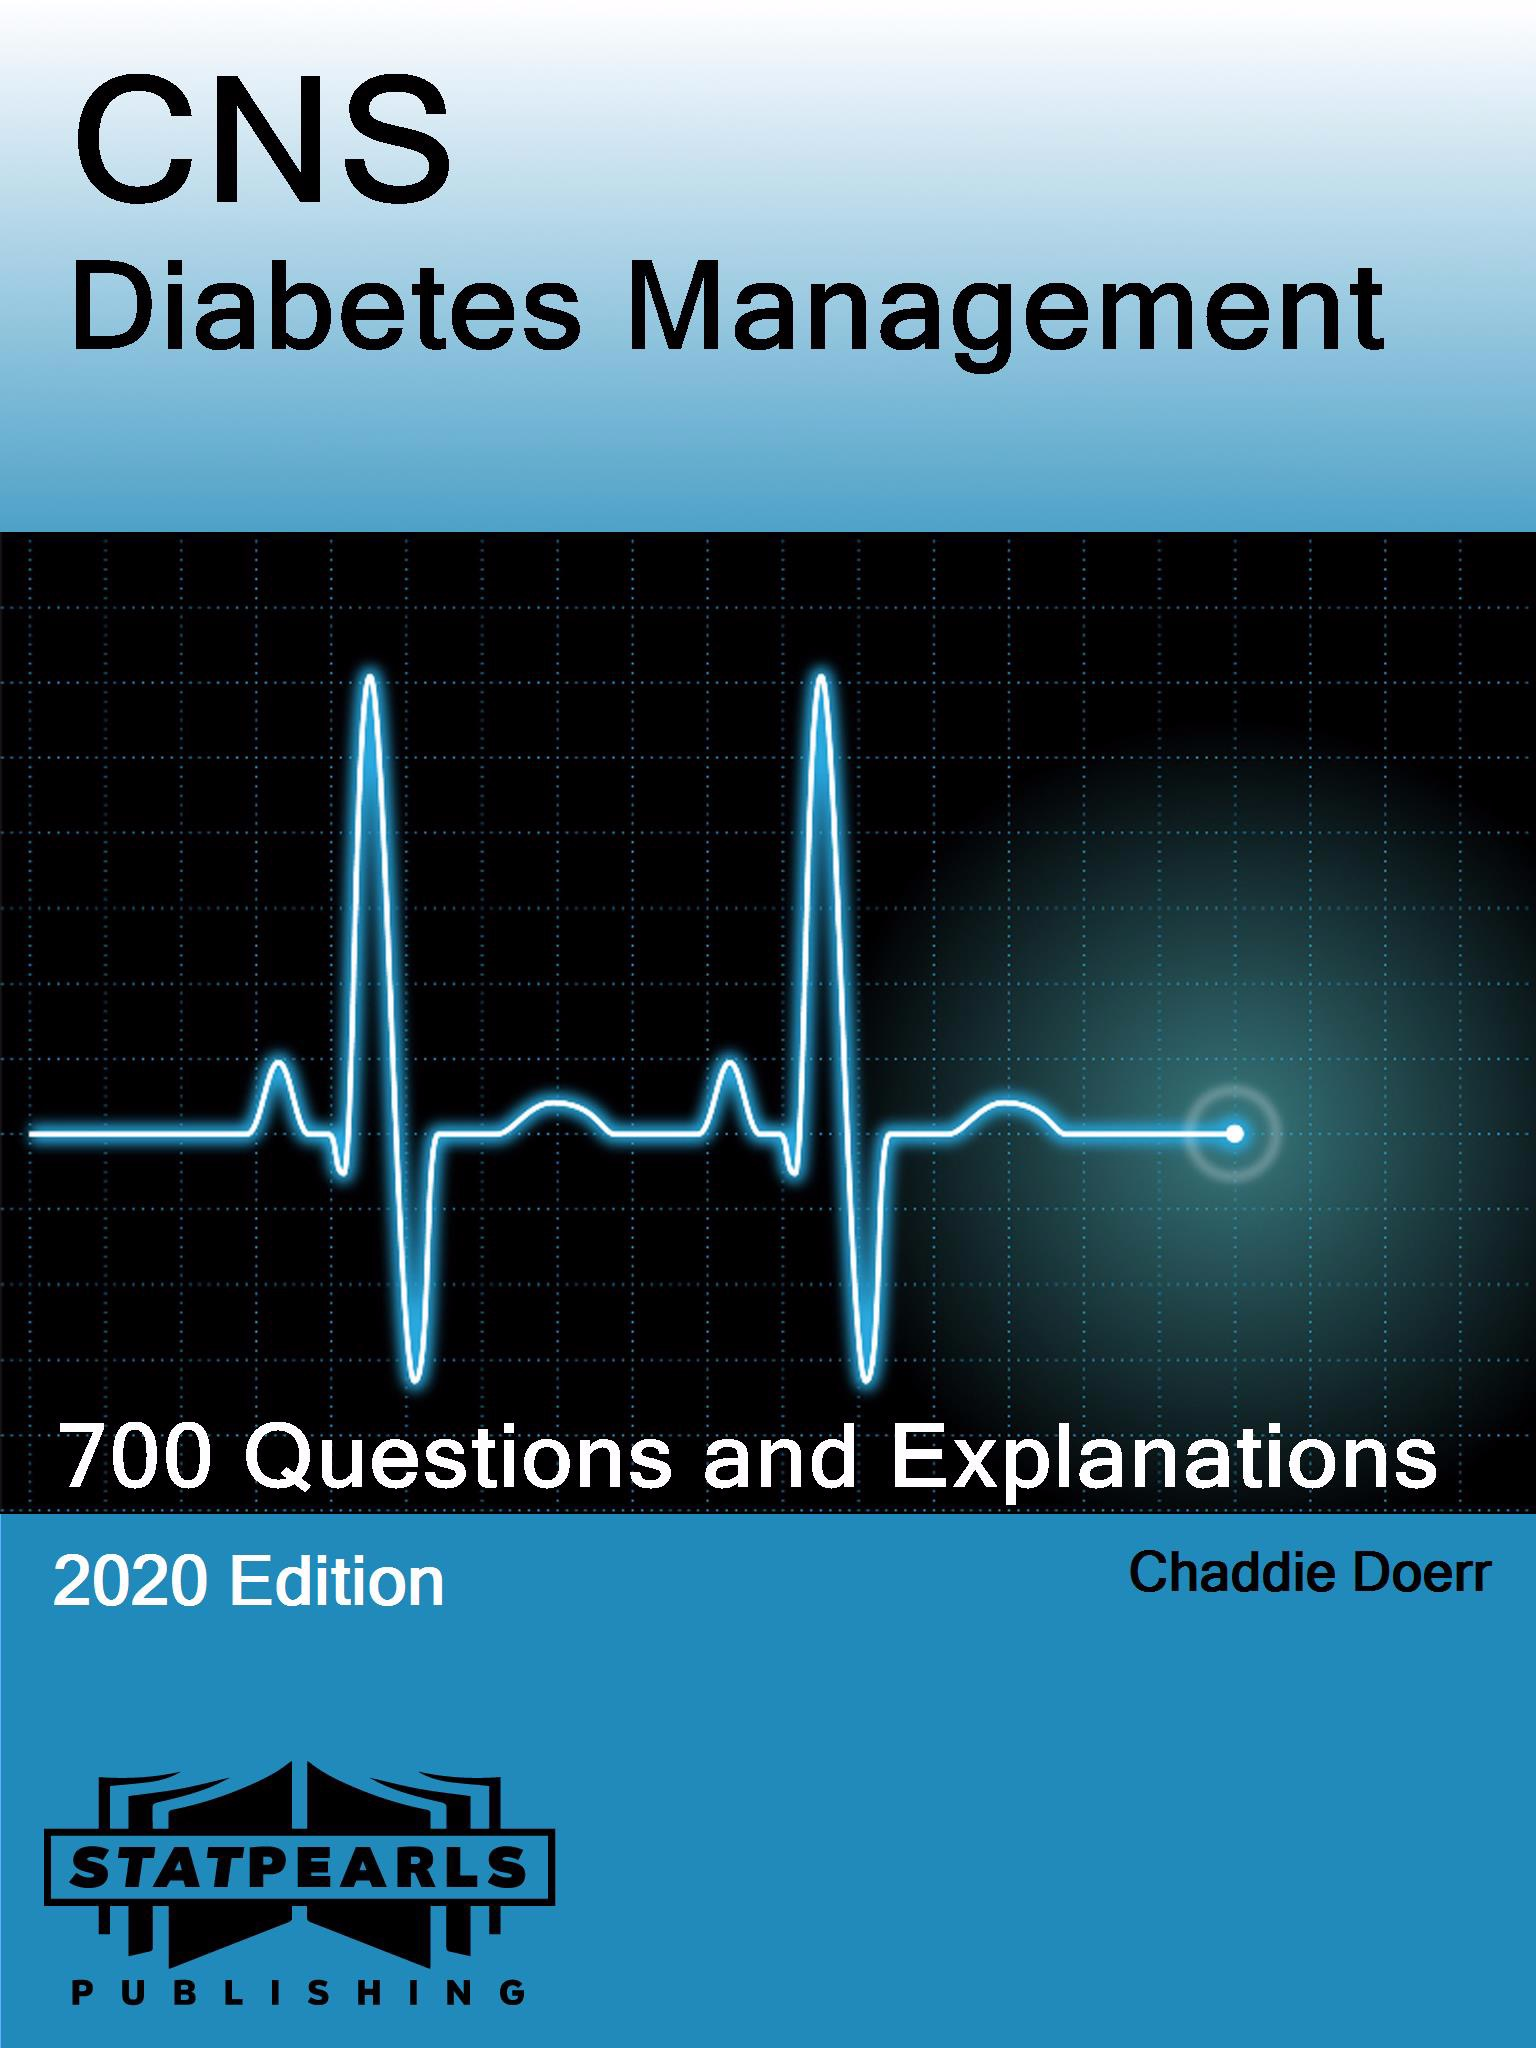 CNS Diabetes Management